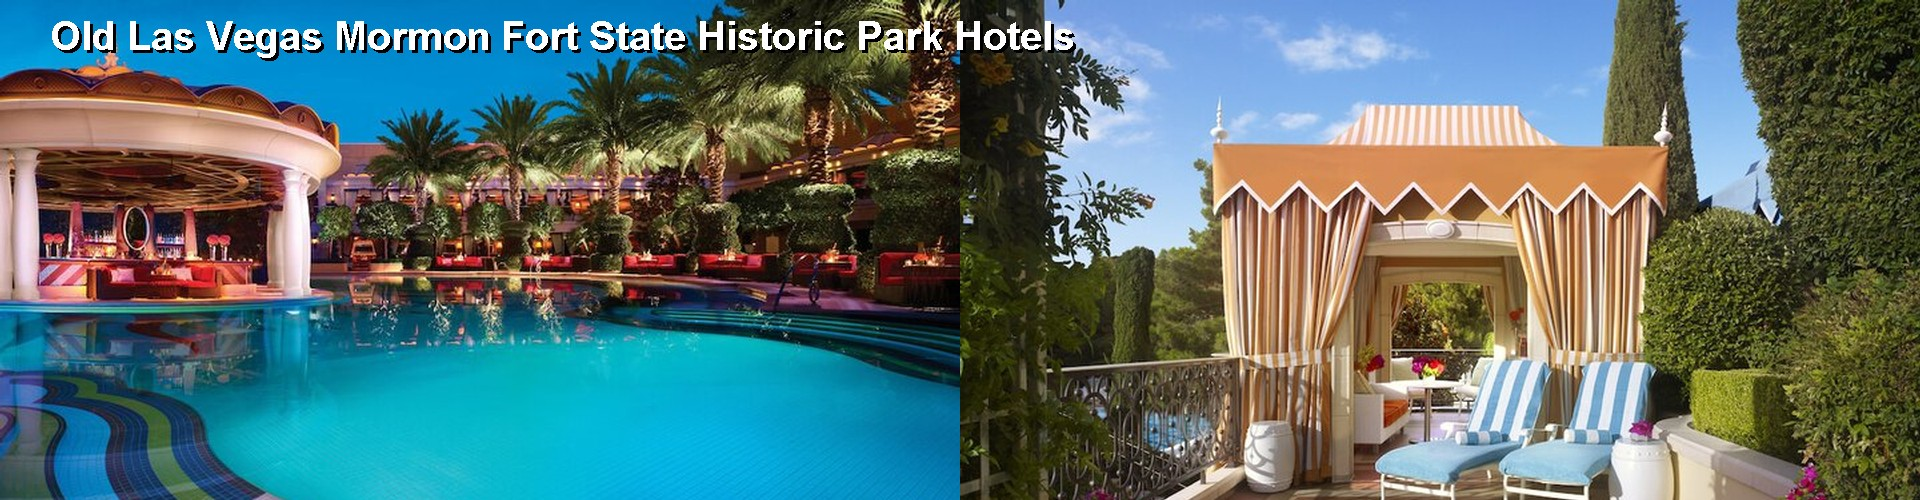 5 Best Hotels near Old Las Vegas Mormon Fort State Historic Park